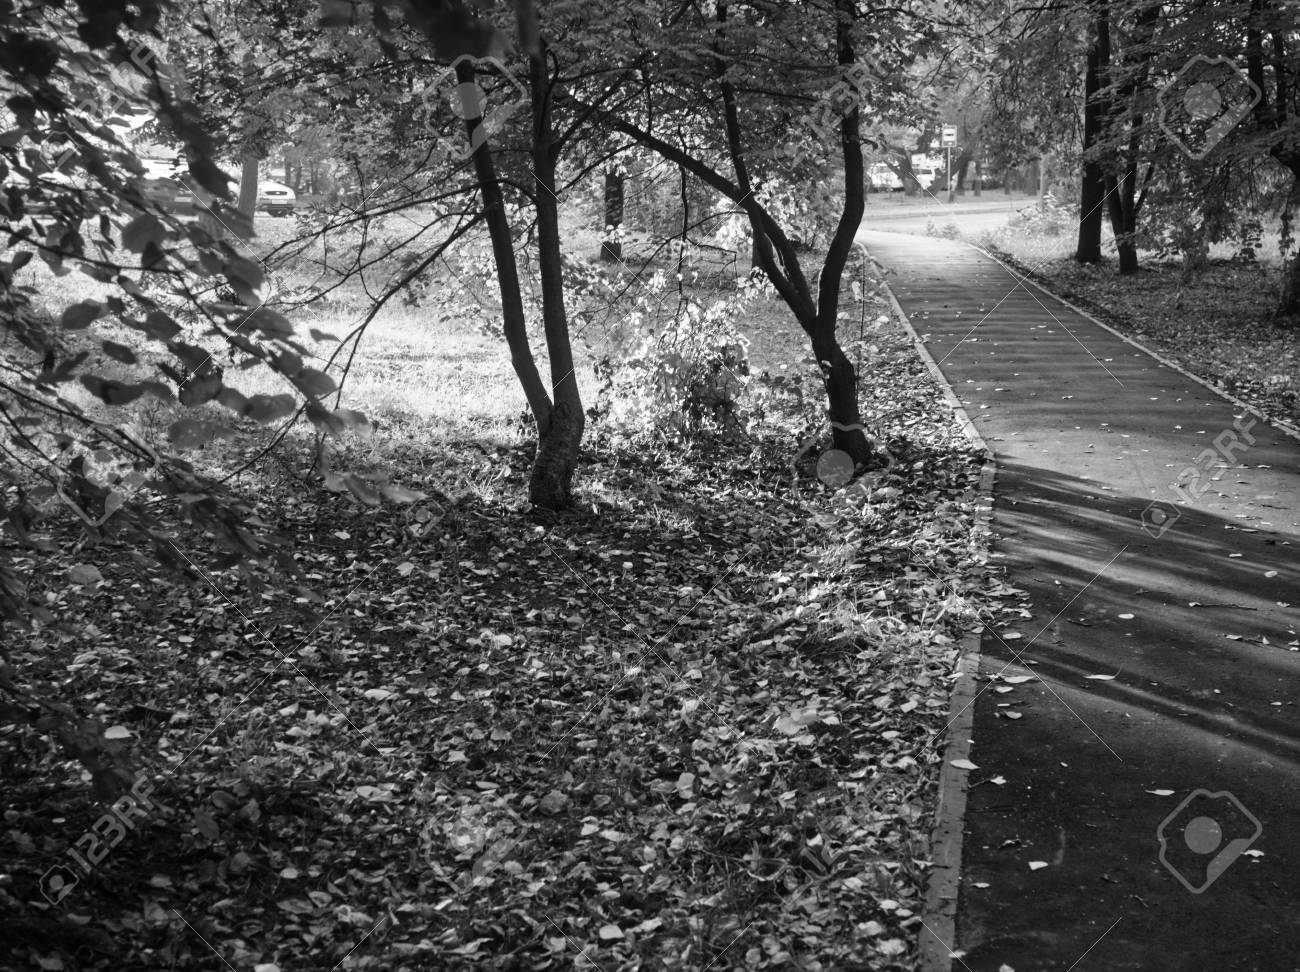 Shadows of trees in the park in summer black and white photo